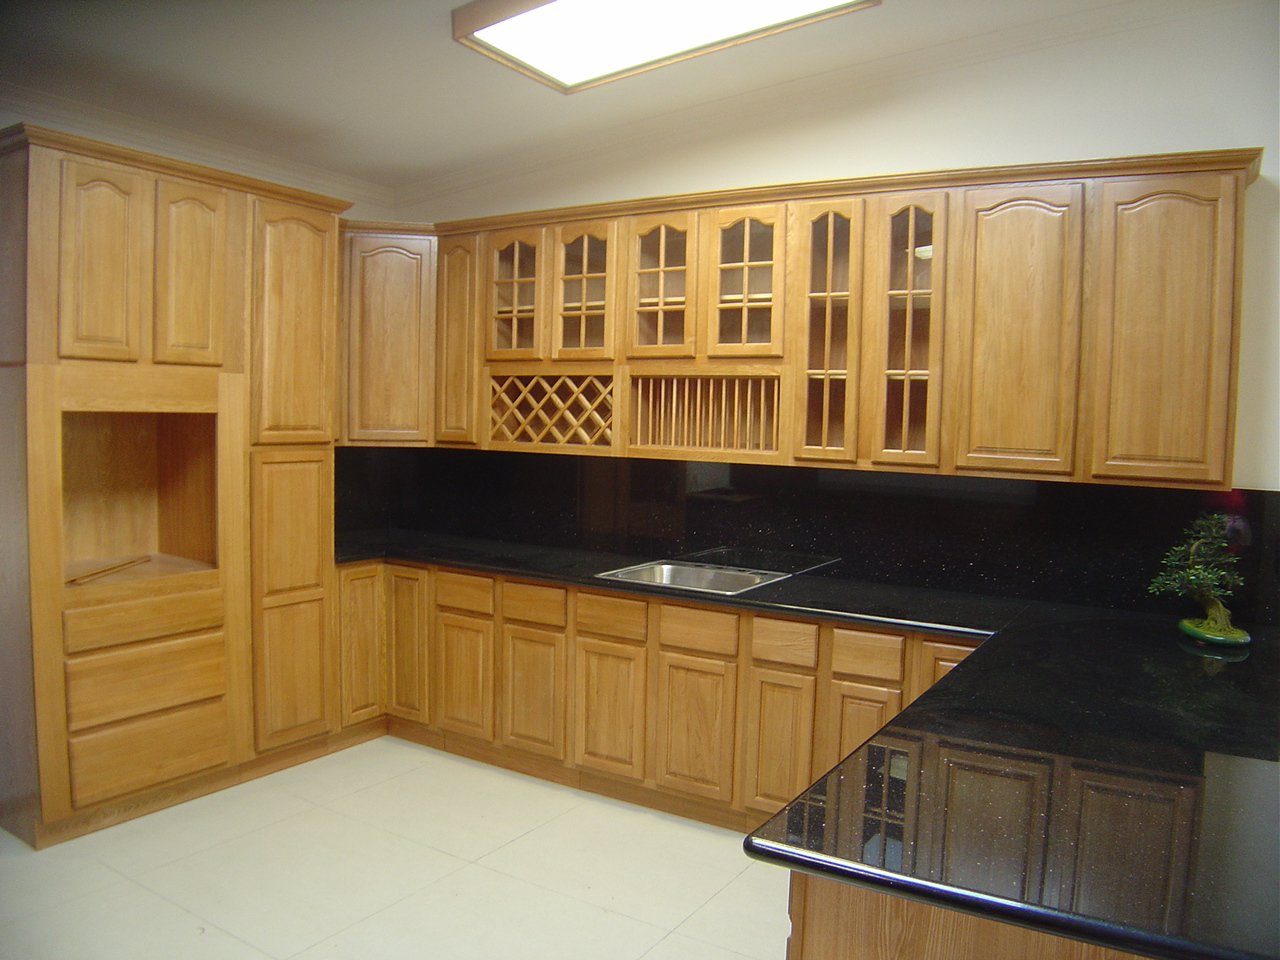 Incredible Oak Kitchen Cabinets Design Ideas 1280 x 960 · 557 kB · jpeg